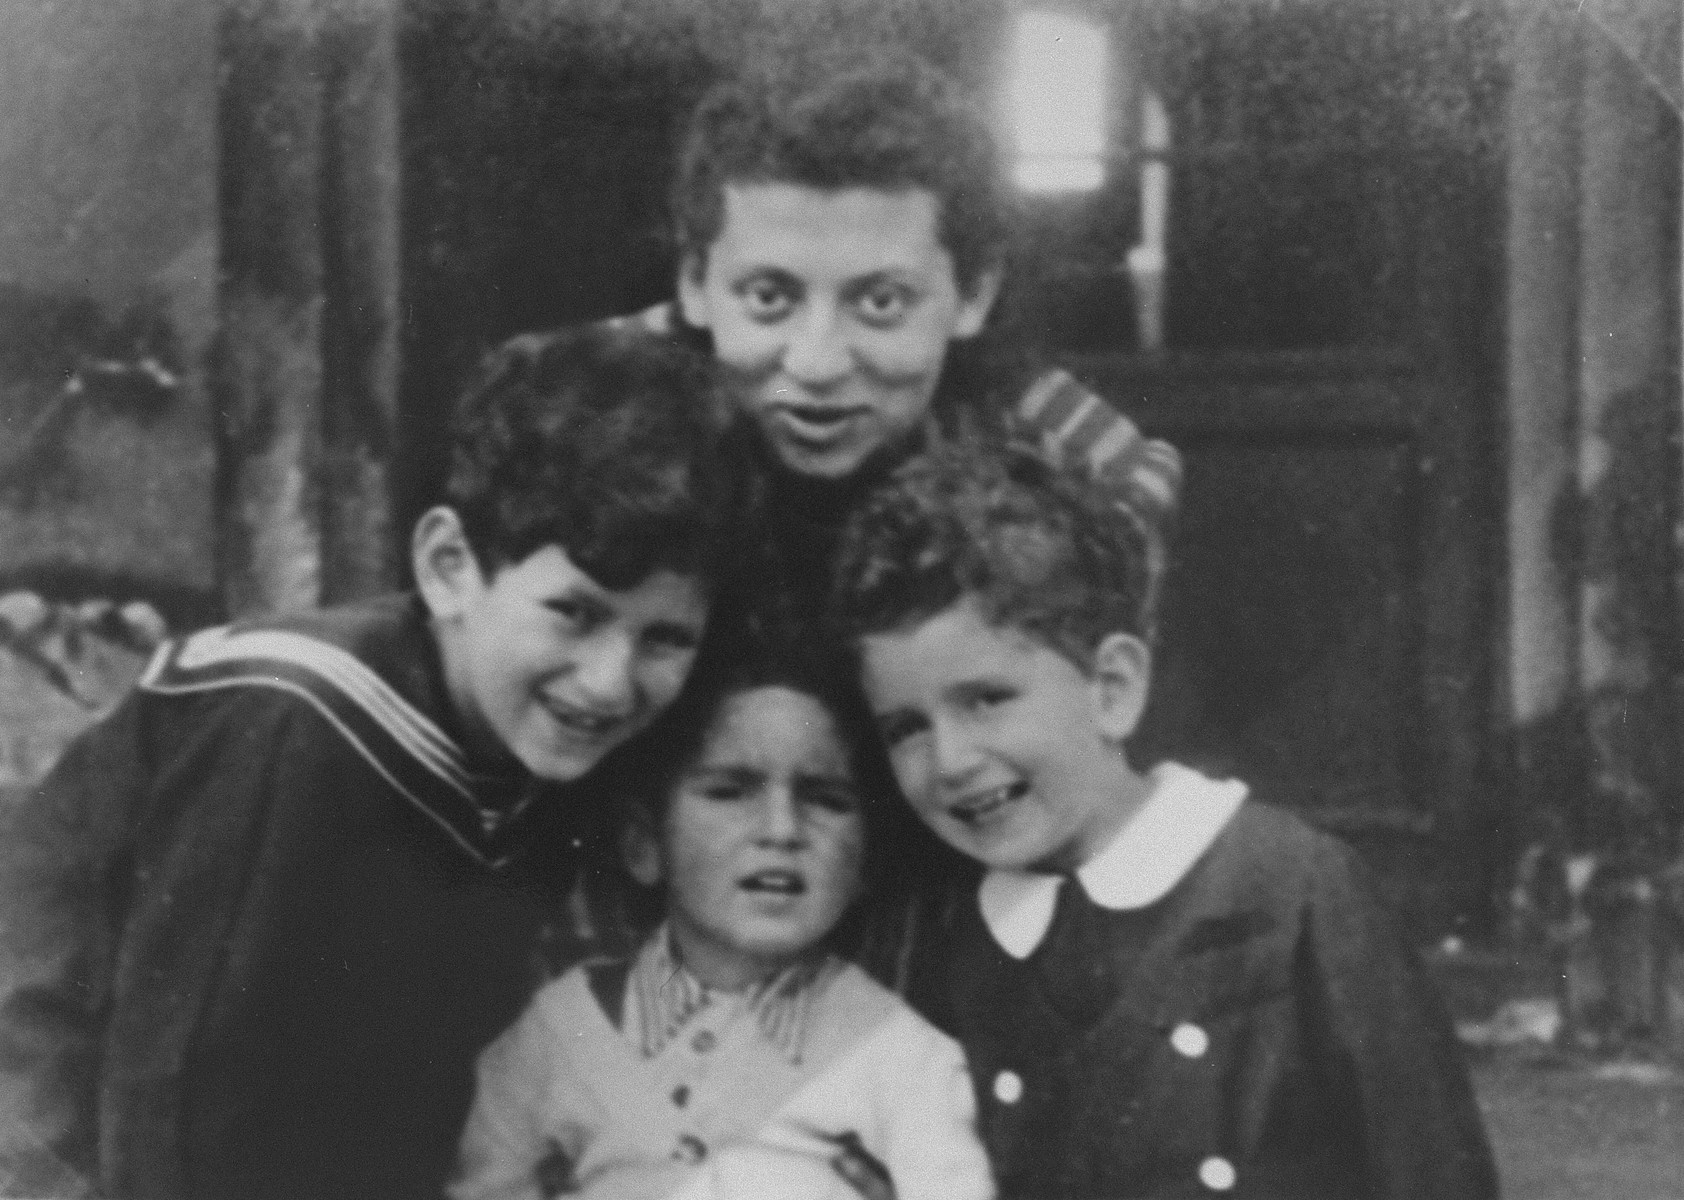 The three Gutgeld children pose with their aunt in the Warsaw Ghetto, prior to their being placed in hiding with Alex and Mela Roslan.   Pictured are Jacob, David and Shalom Gutgeld with their Aunt Janke.